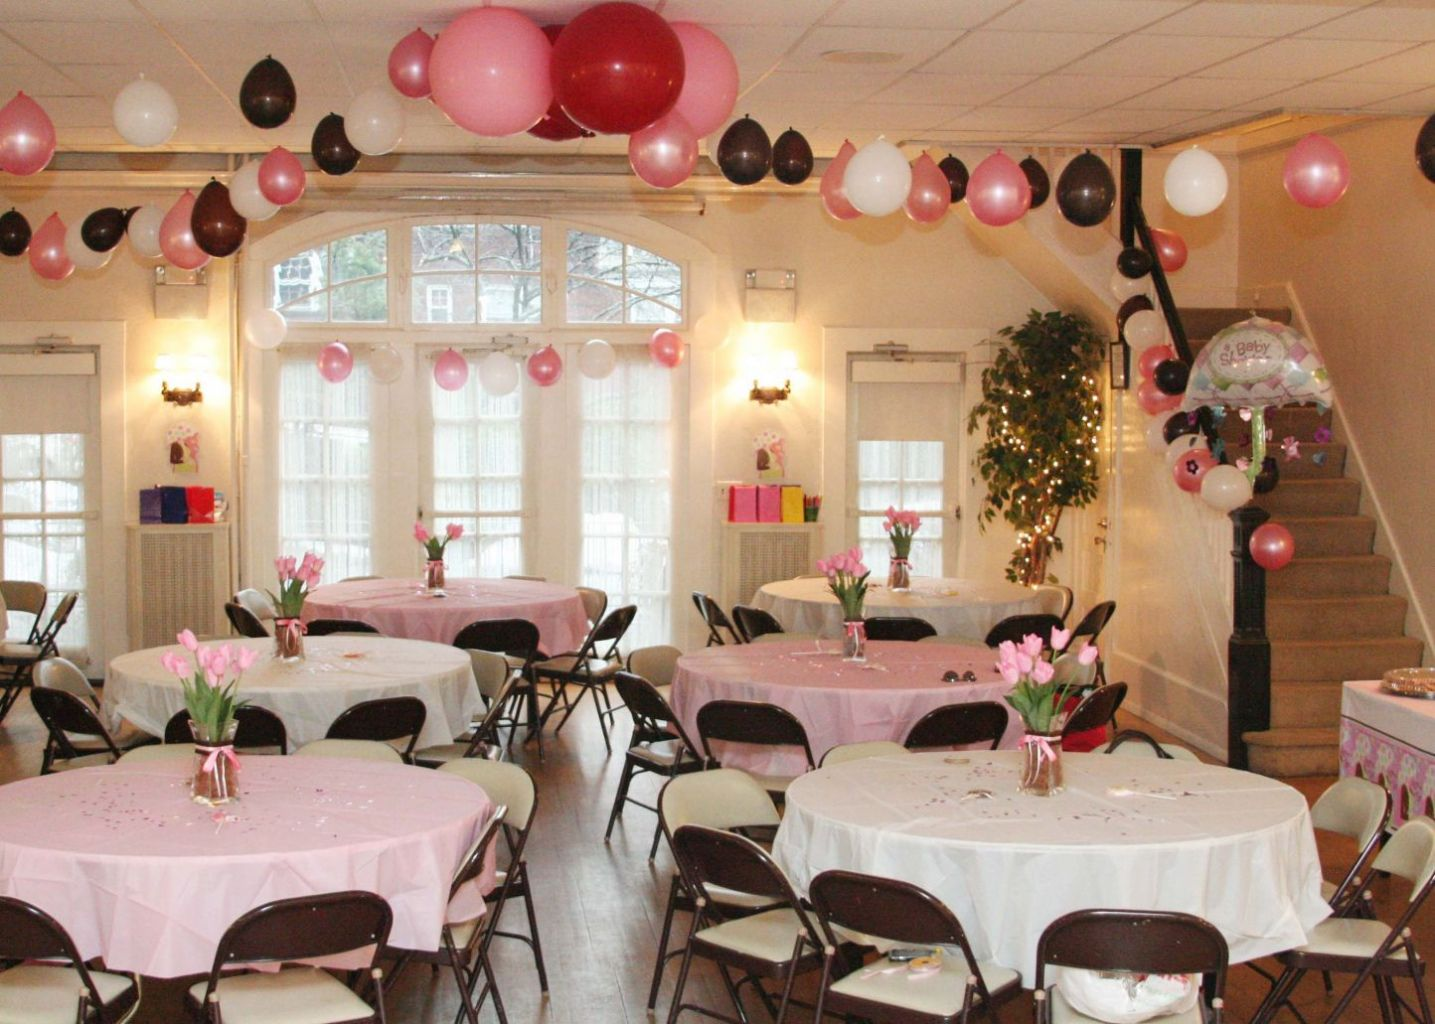 50 Rooms To Rent For Baby Shower Best Cheap Modern Furniture Check More At Http Www Itscultu Baby Shower Venues Bridal Shower Venues Baby Shower Locations